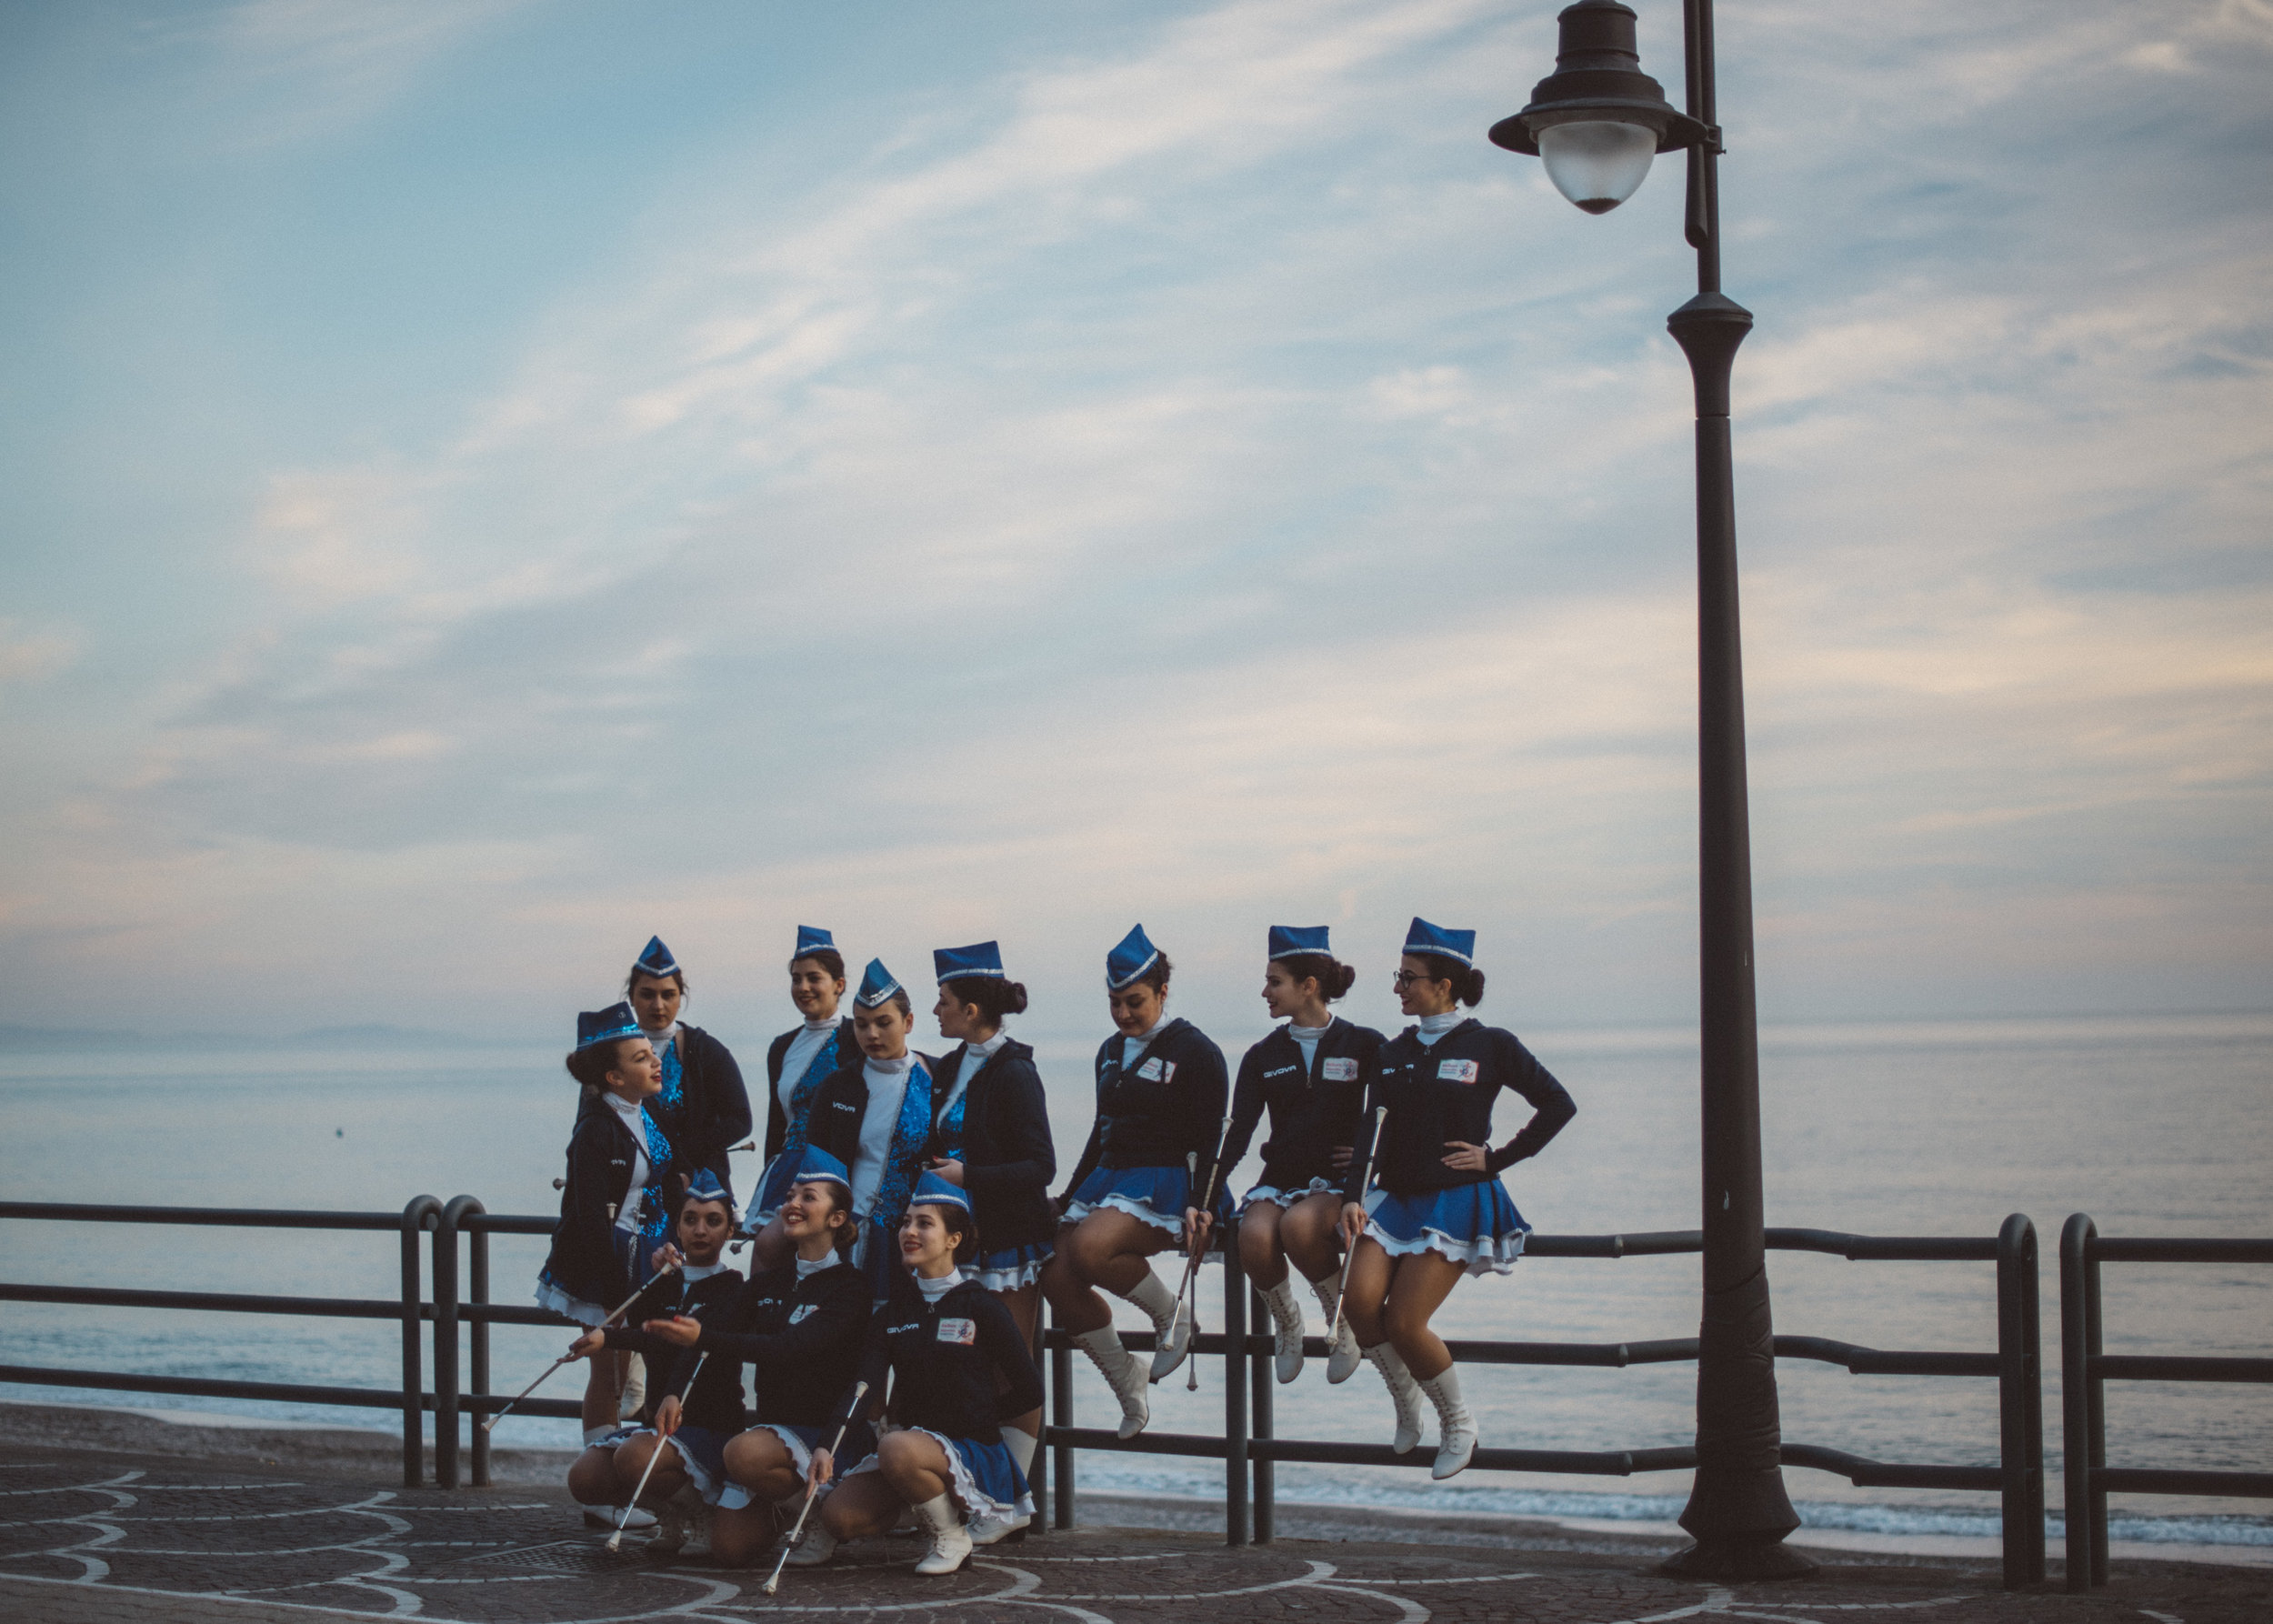 The Sailors Majorette Team posing for a group photograph on the waterfront of Maiori after a majorette and marching band festival.